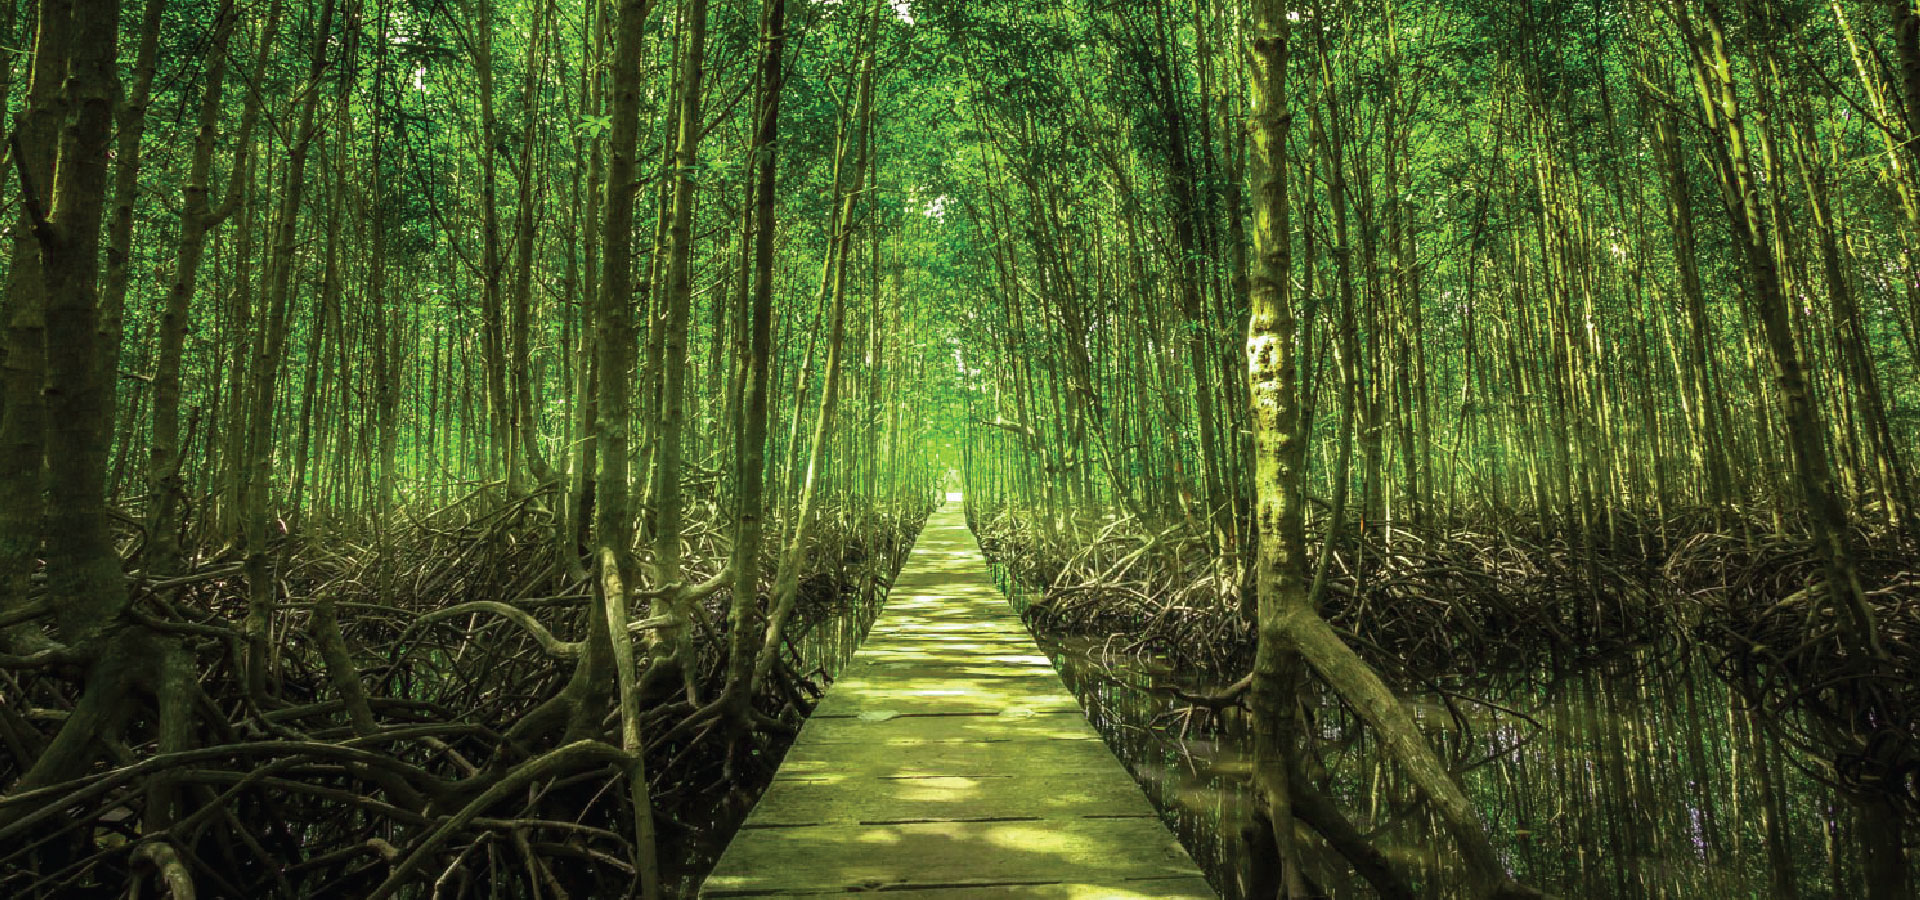 Discover the mangrove forest in Koh Kong